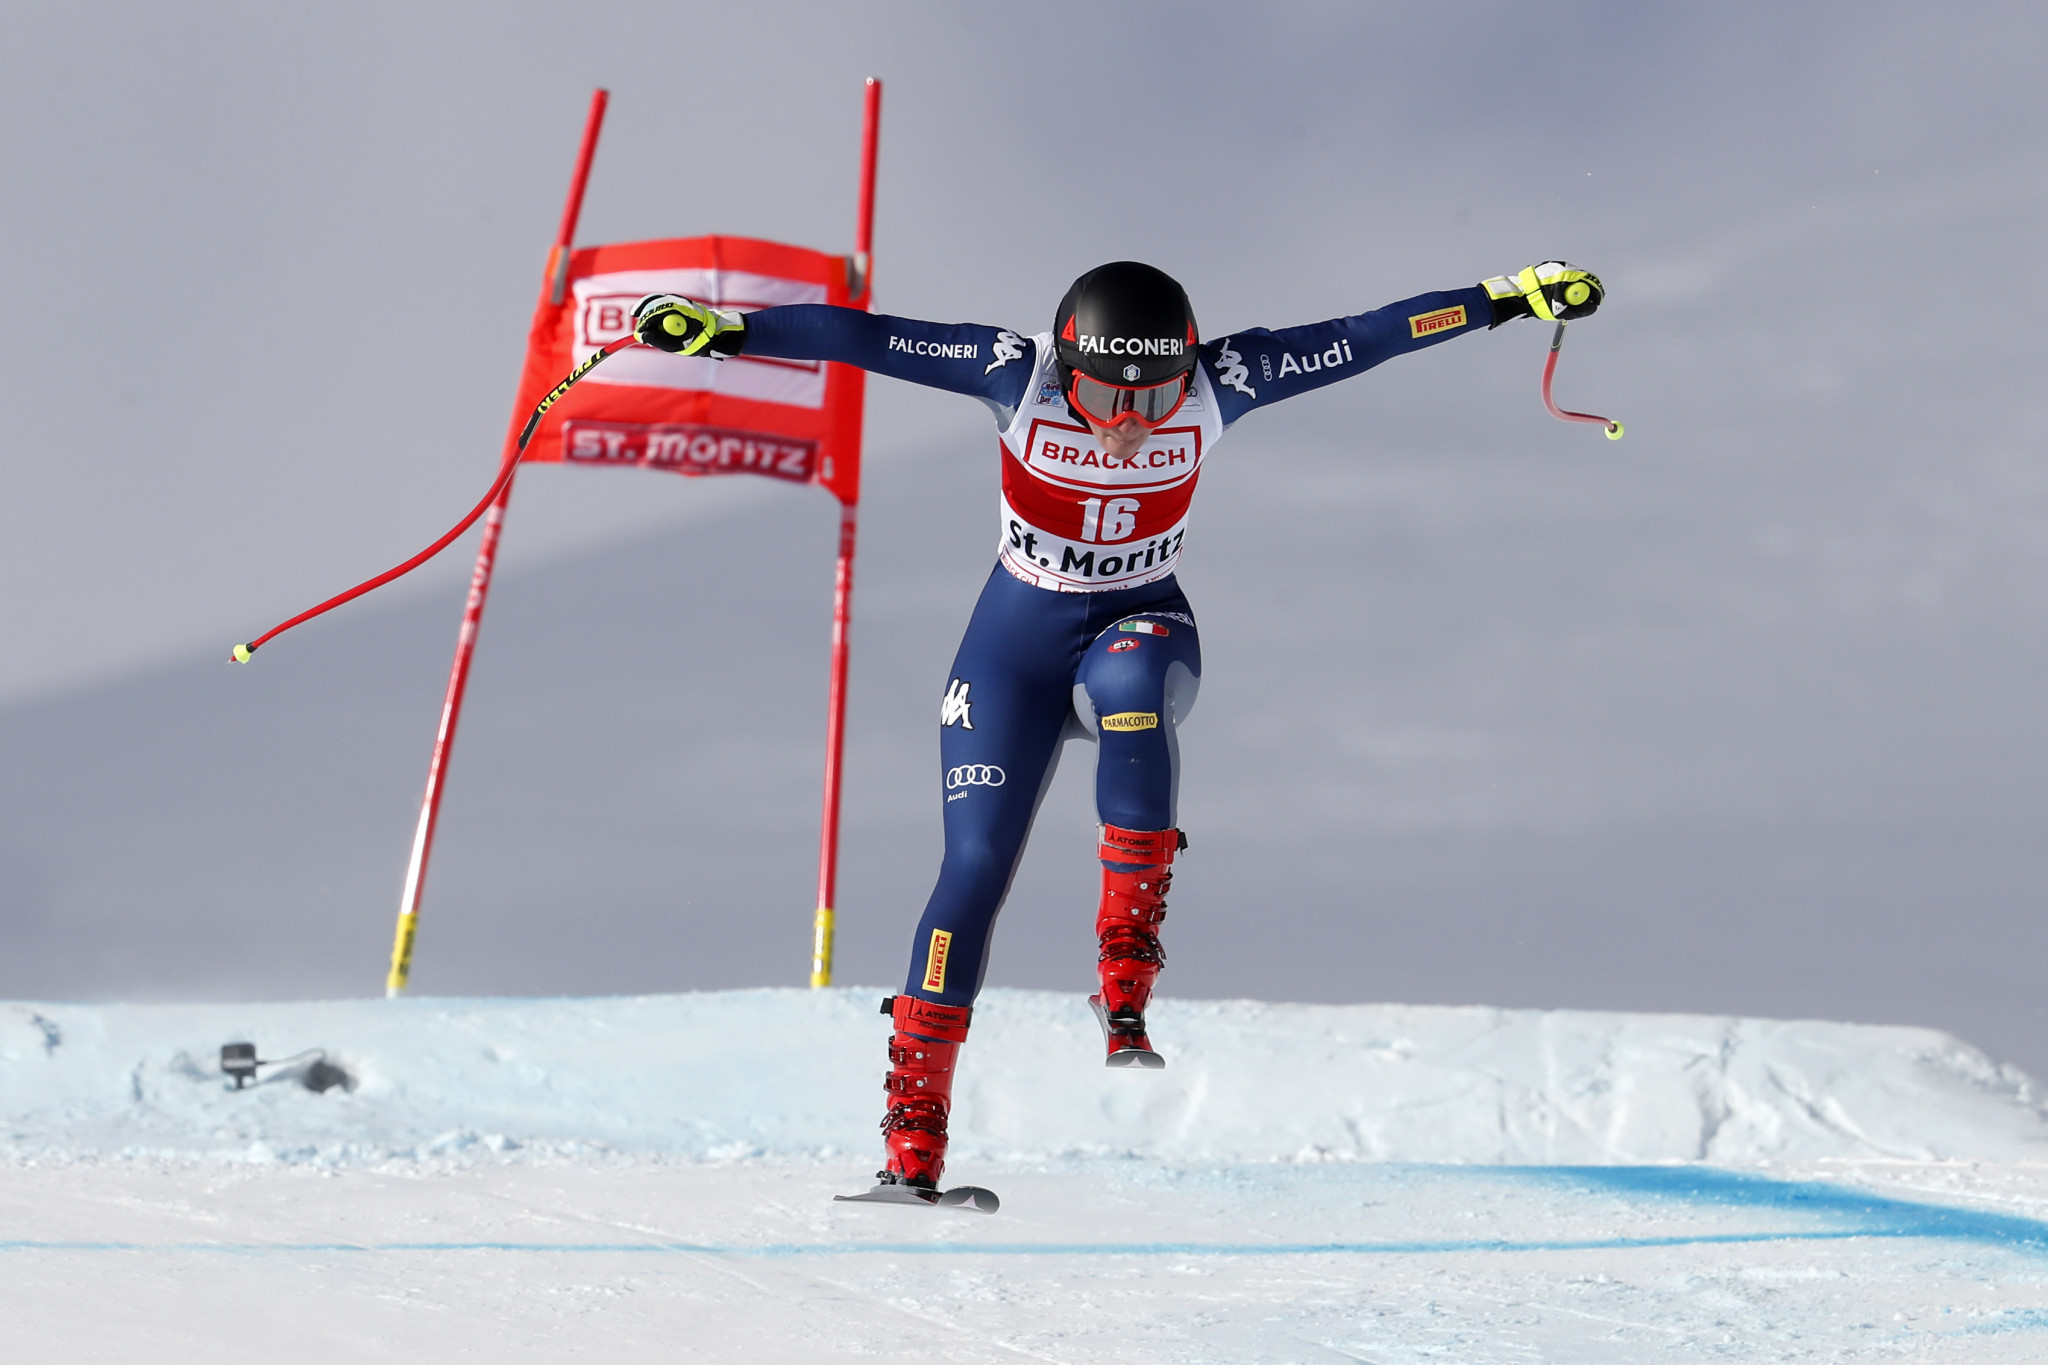 Goggia narrowly triumphs in Super-G event at FIS Alpine Skiing World Cup in St Moritz